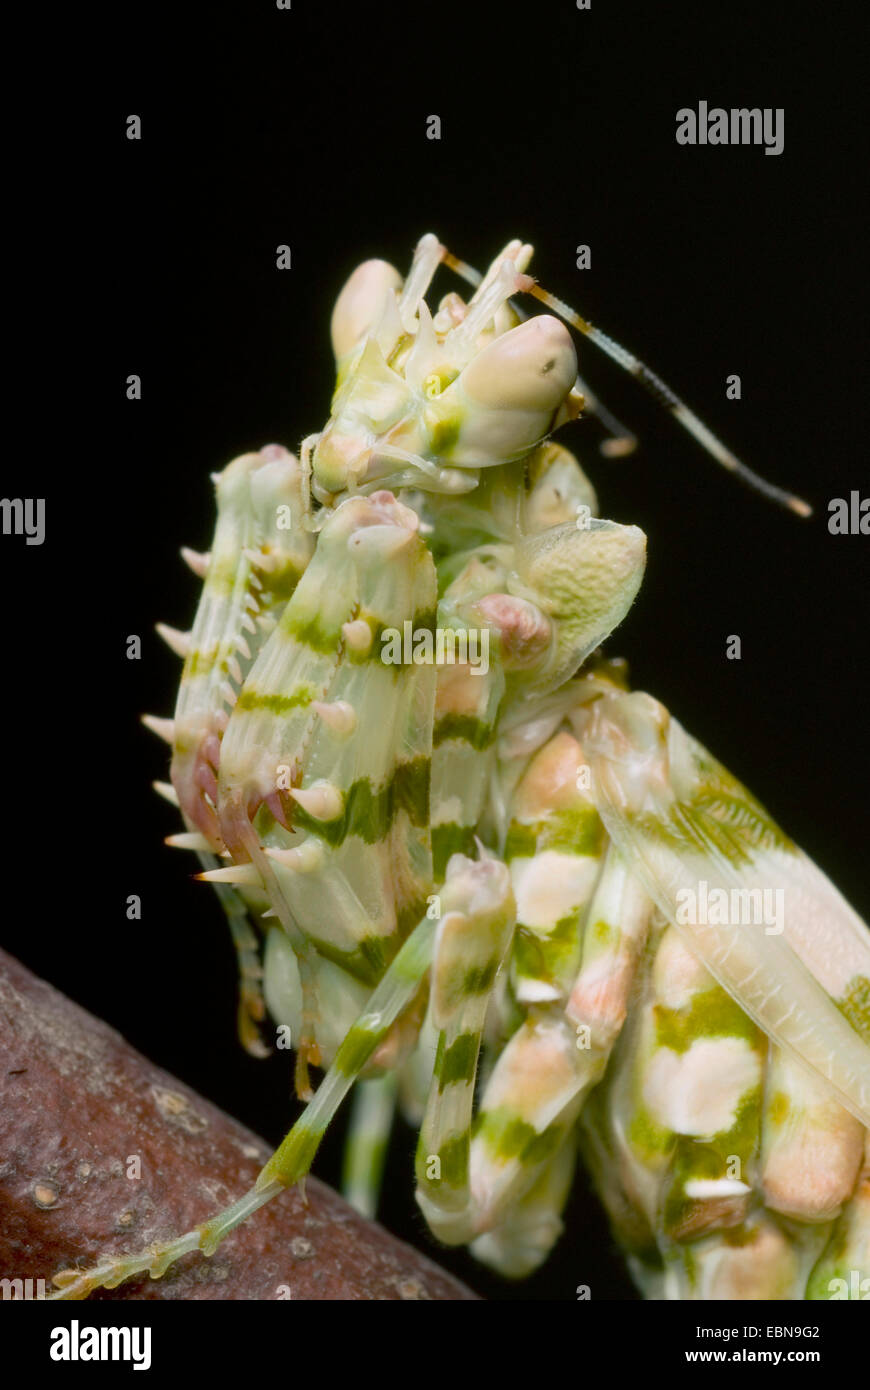 Wahlbergi's Spiny Flower Mantis, Wahlbergis Spiny Flower Mantis (Pseudocreobotra wahlbergi), portrait - Stock Image